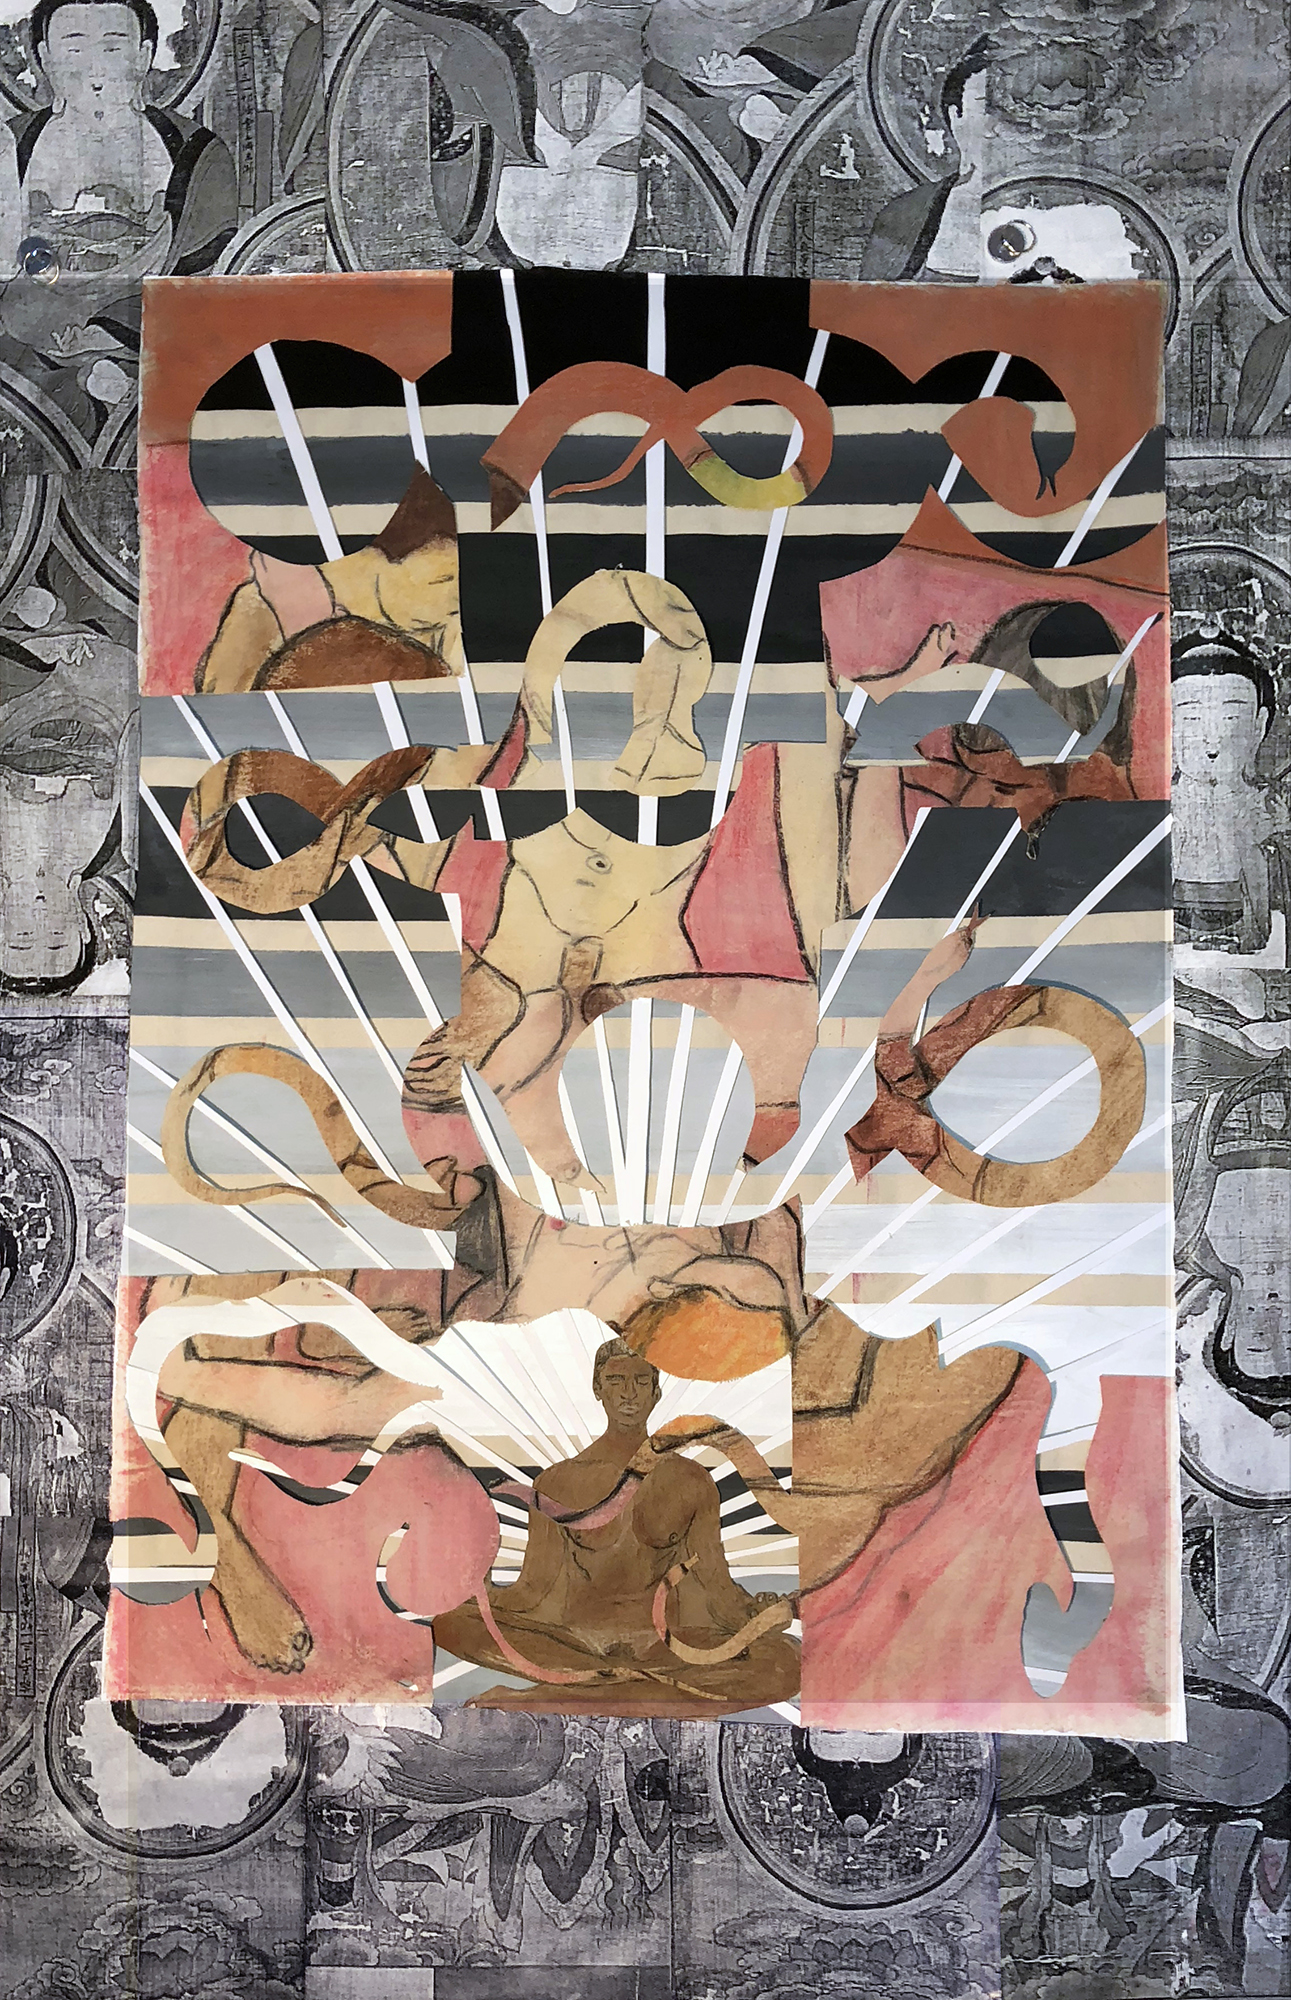 TonyMichaleEstrada - Future buddhas 3 - 62.5 x 41 - mixed media_ pastel drawing on canvas cut outs floating in photo print assemblage frame with cardboard and canvas painting background - 2018 - $1500.jpg